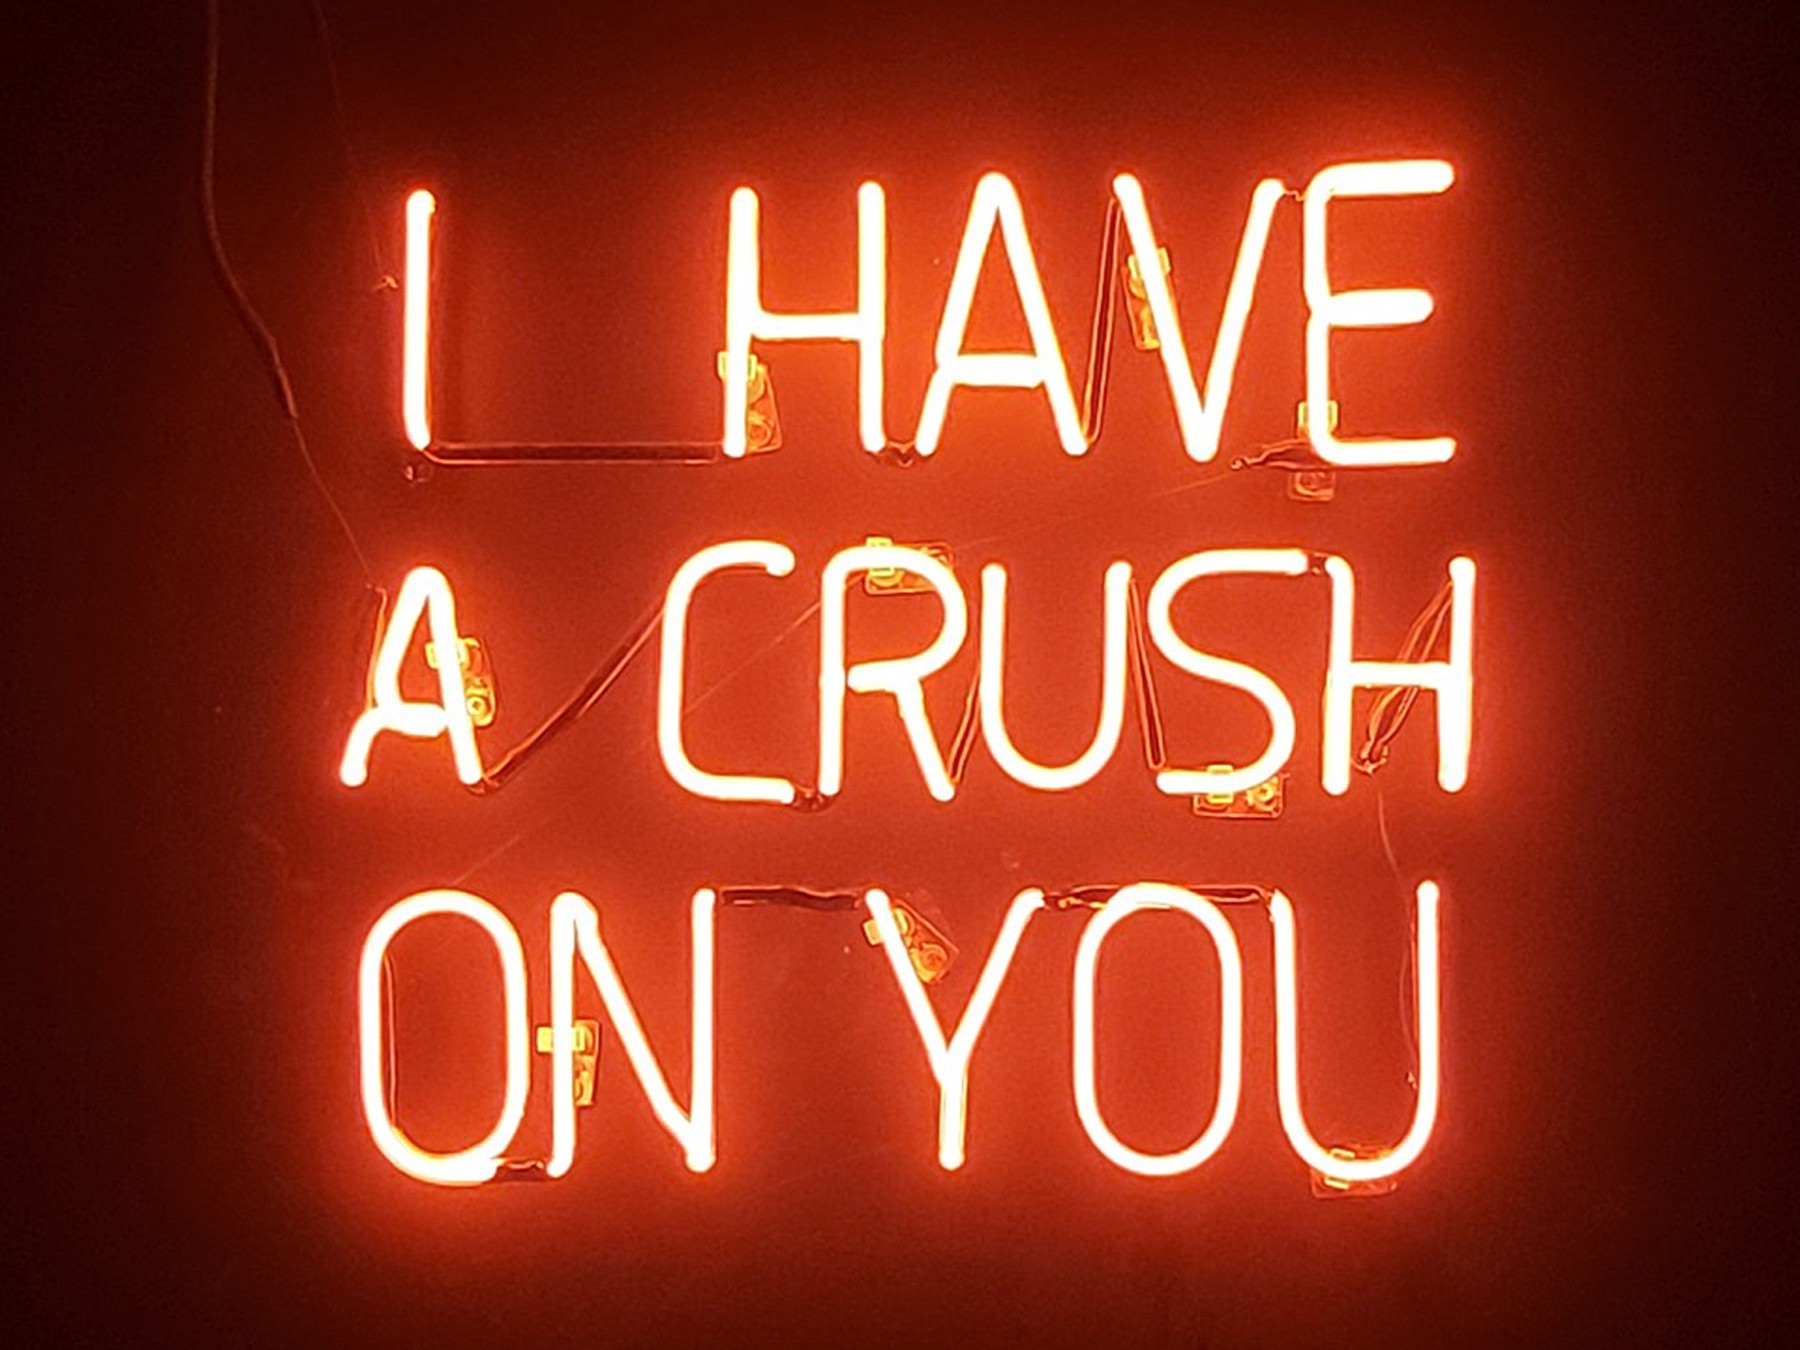 """I have a crush on you"" in a red neon sign"